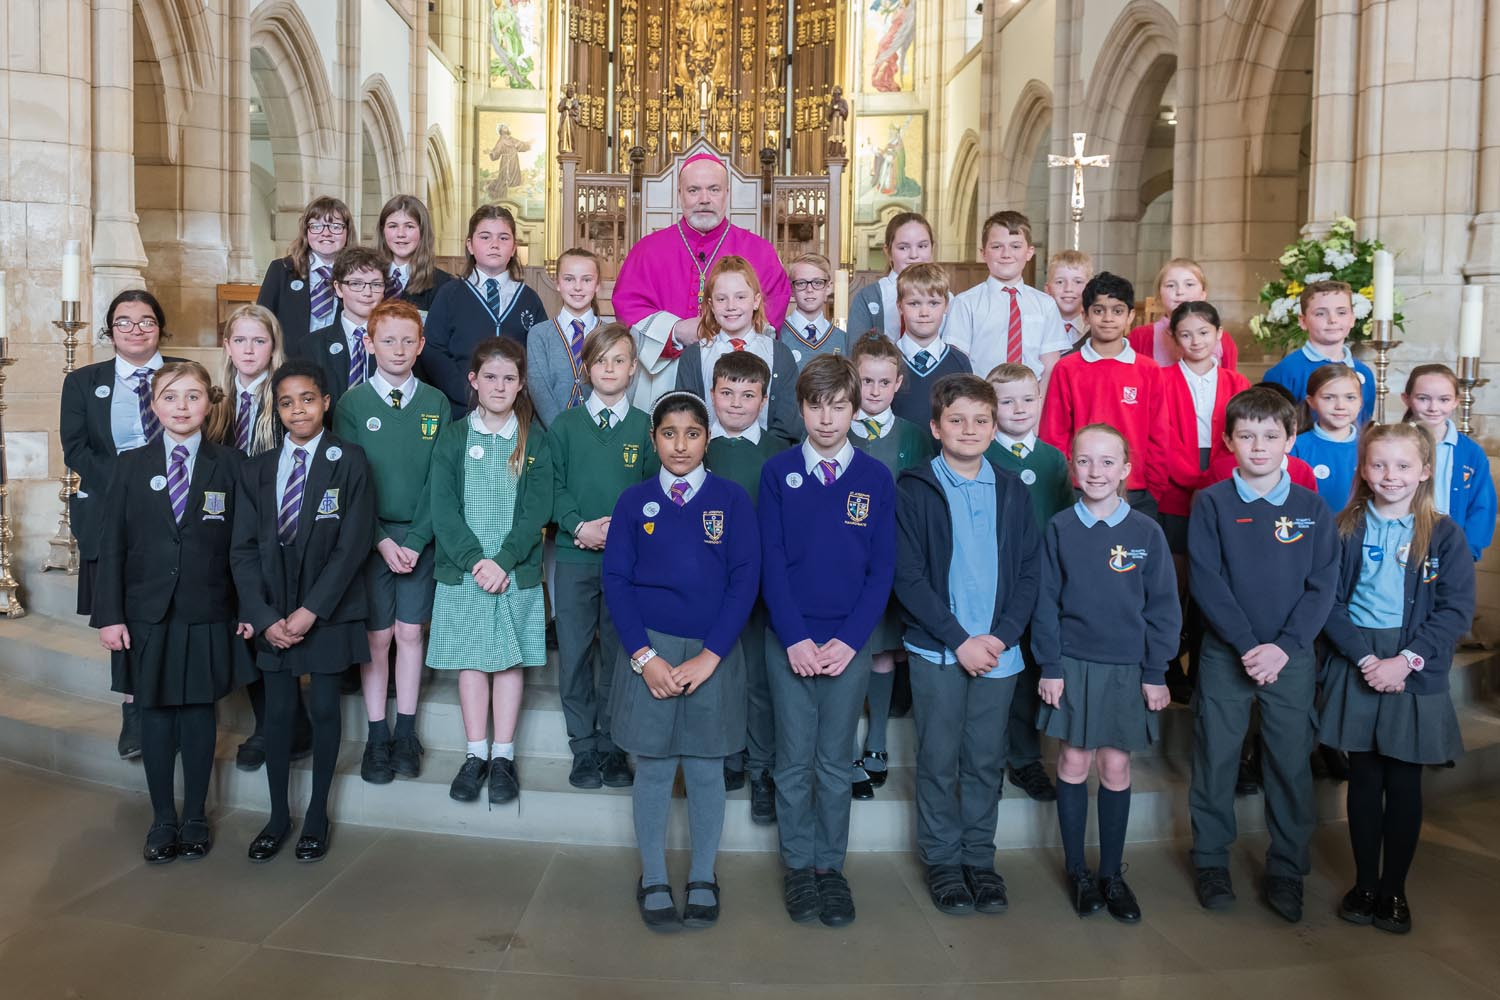 Photo: The ten schools in the Bishop Wheeler Catholic Academy Trust took a commemorative photo together with Bishop Marcus